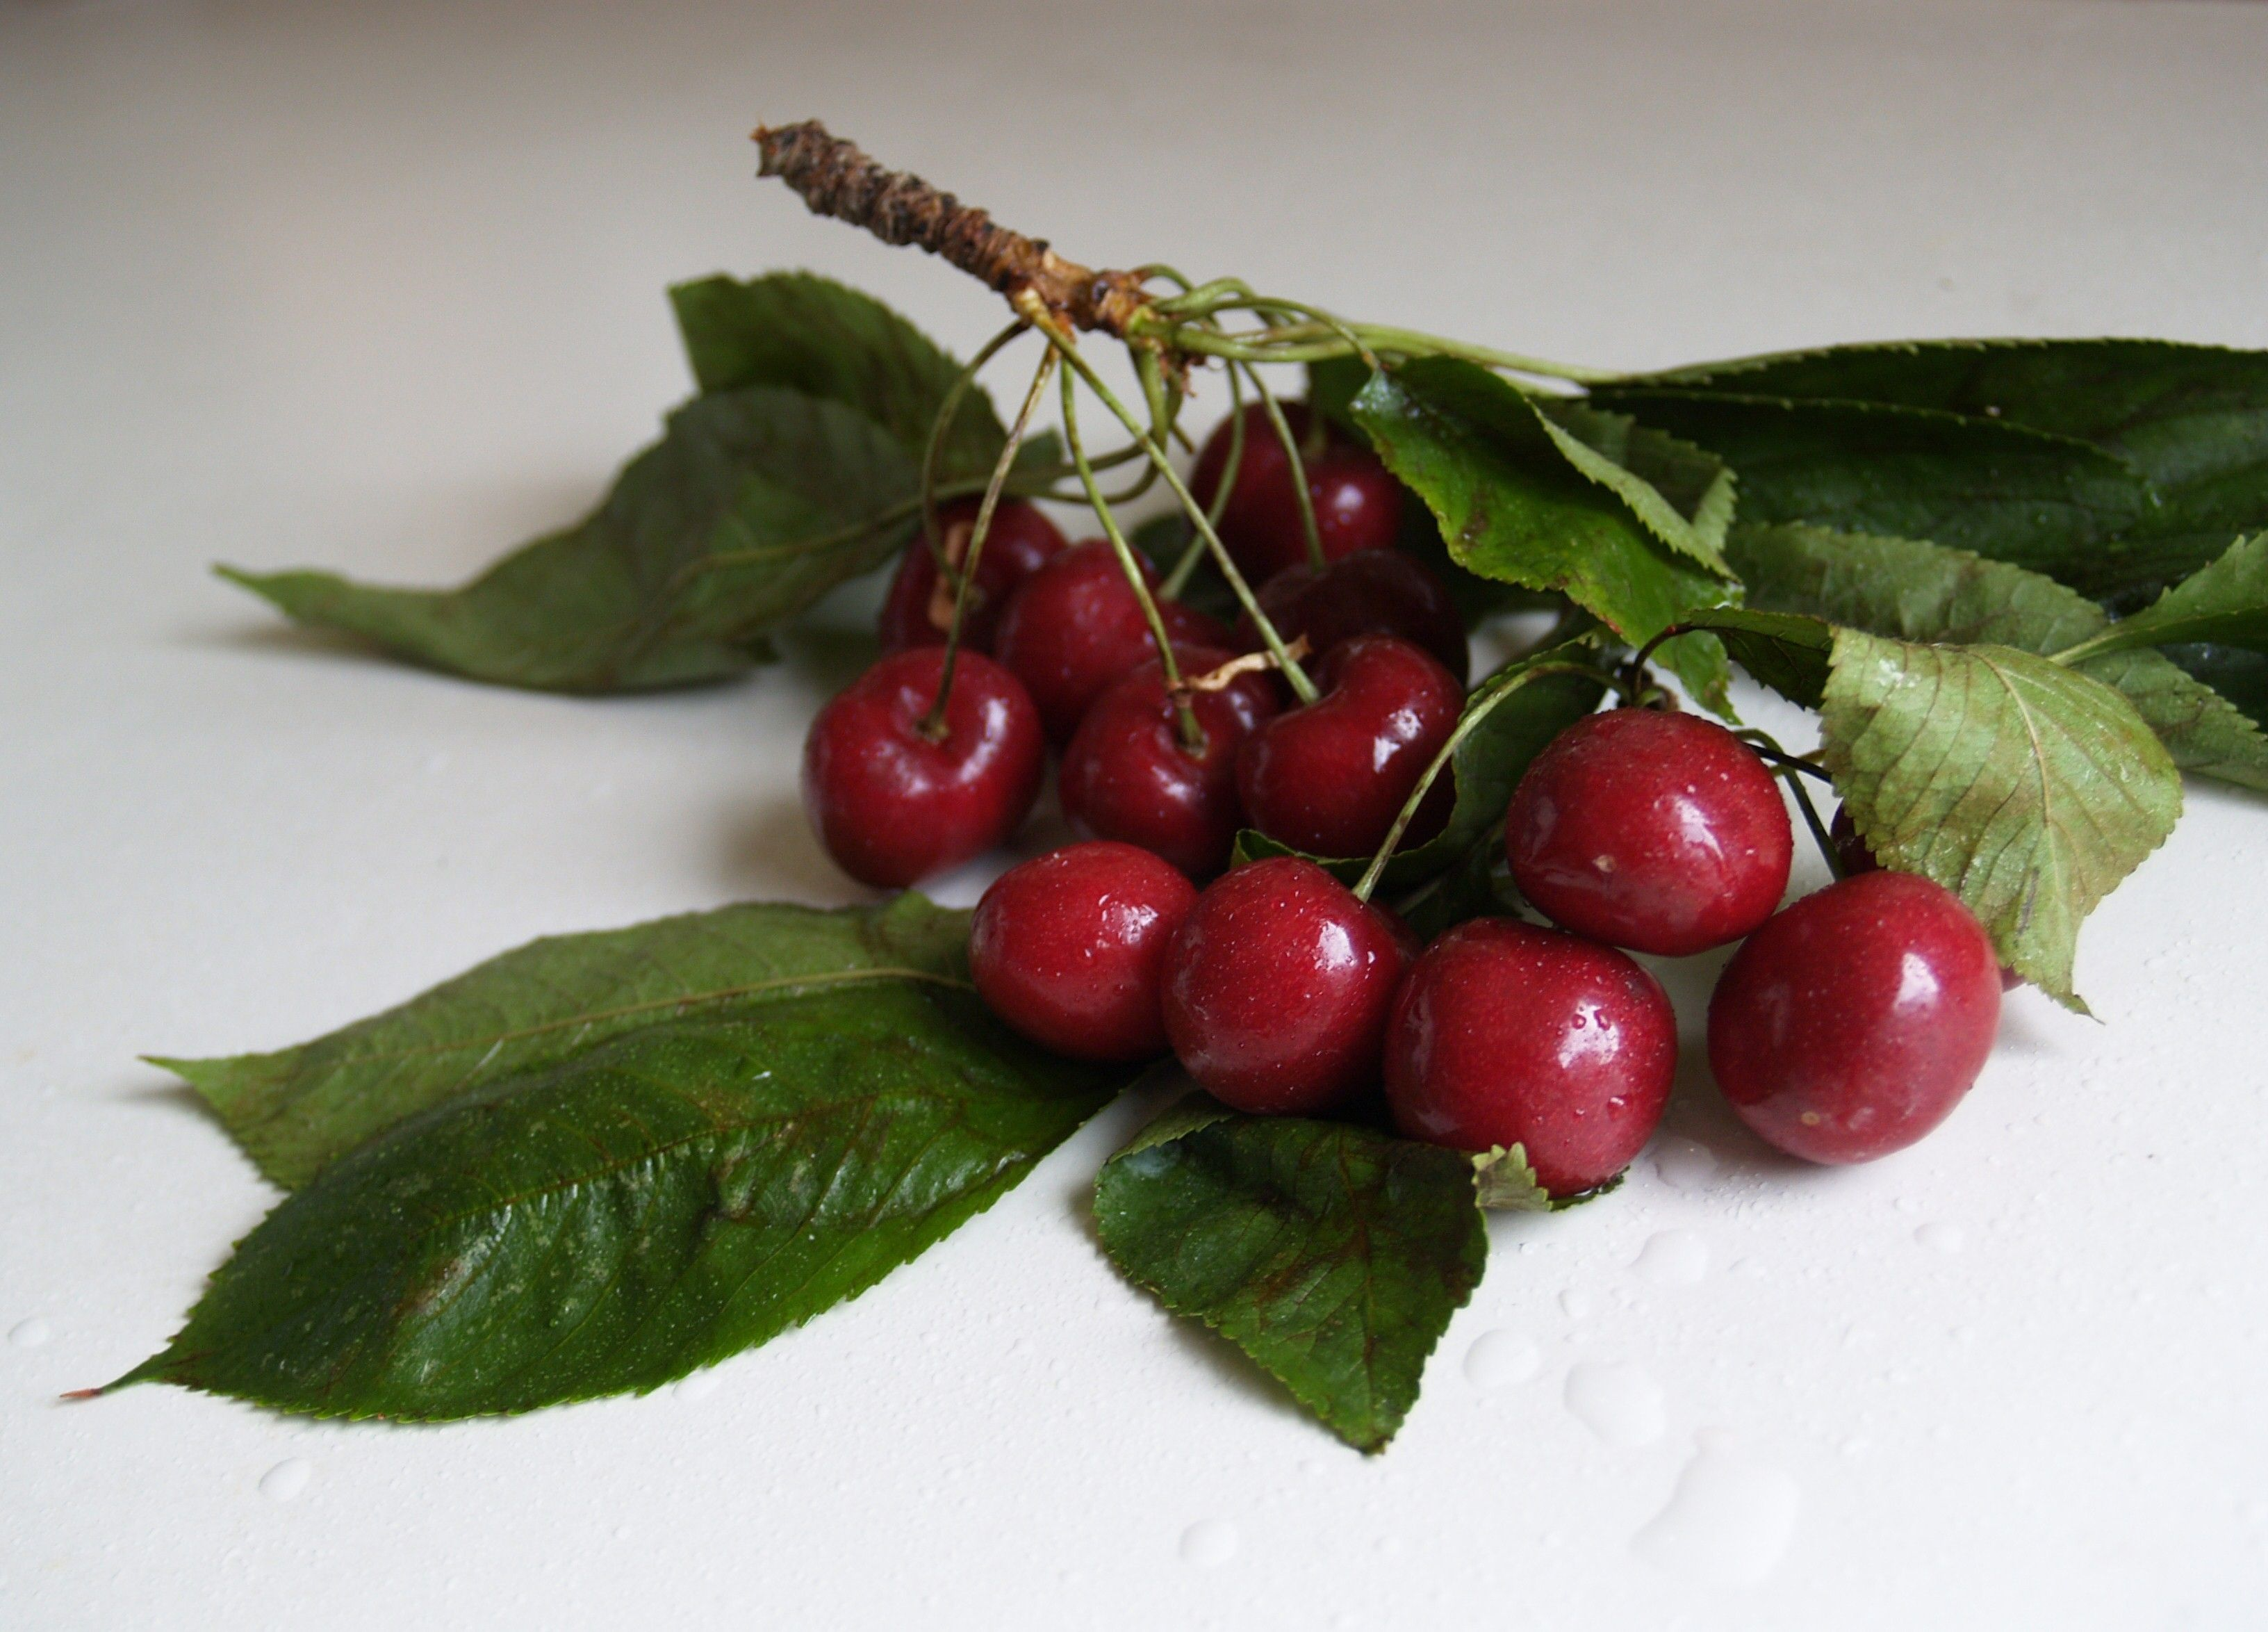 Cherries on a branch.